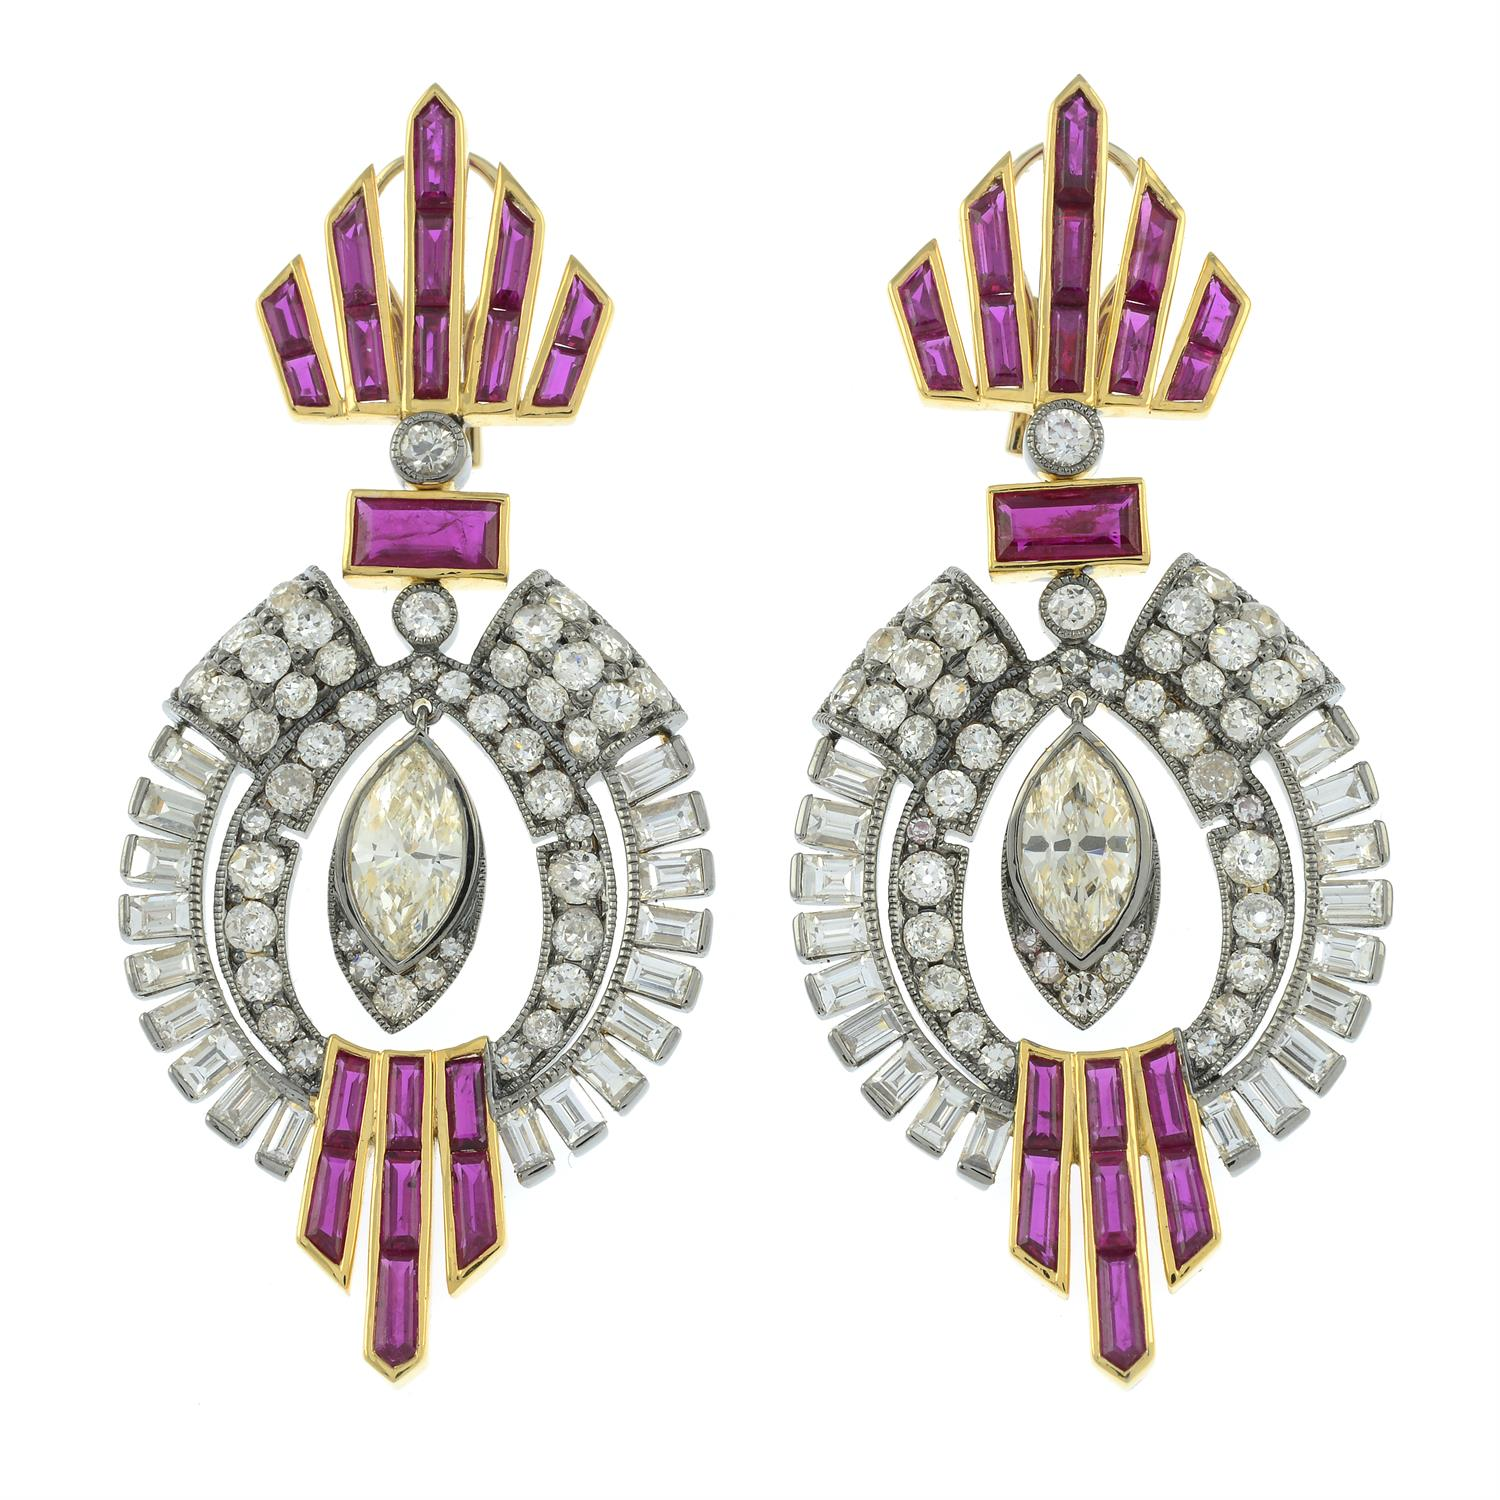 A pair of vari-cut diamond and calibré-cut ruby earrings, suspending a central marquise-shape - Image 2 of 3